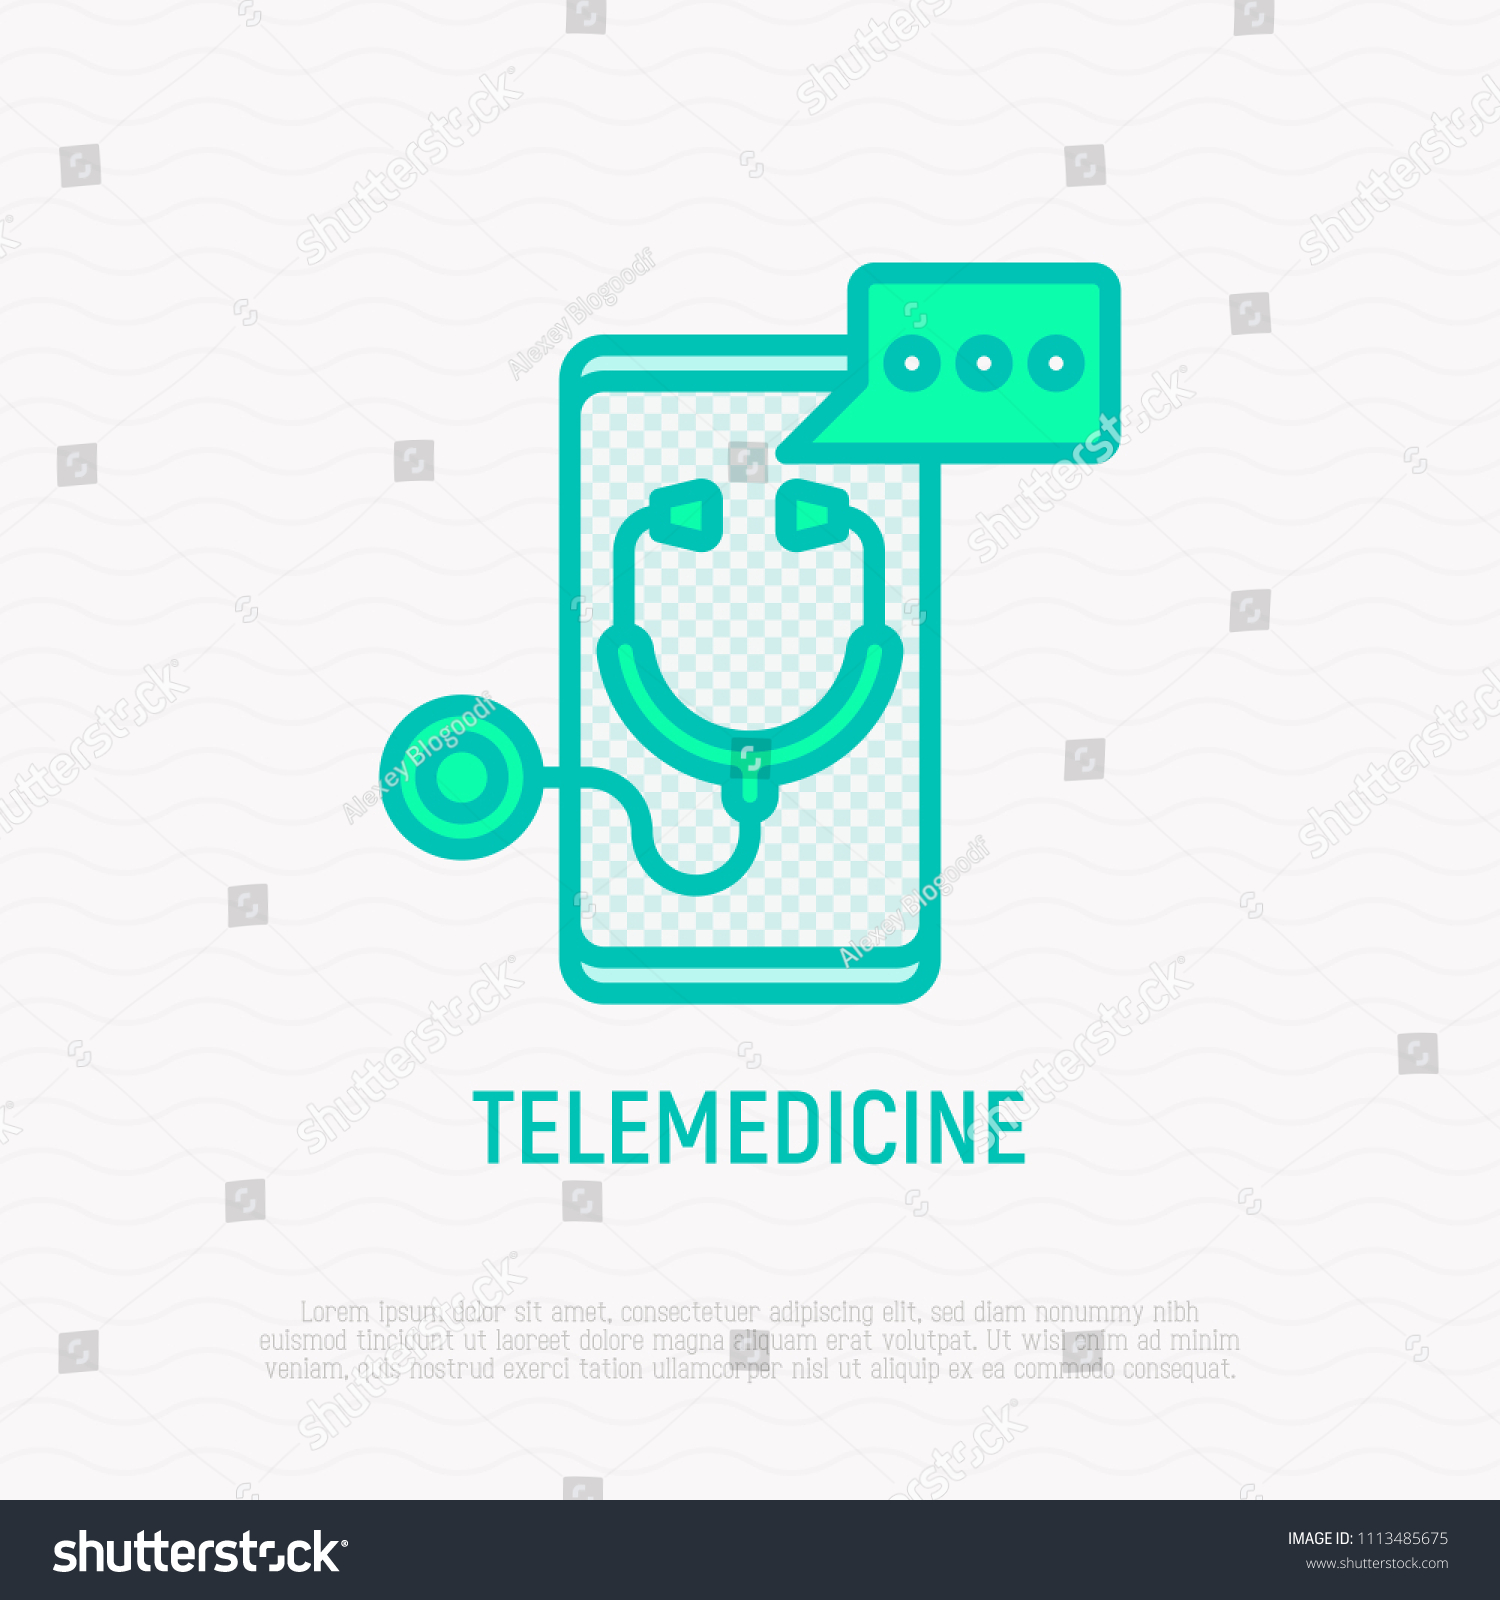 Telemedicine Thin Line Icon Stethoscope Speech Stock Vector Royalty Remote Concept Diagram With Bubble On Screen Of Smartphone Modern